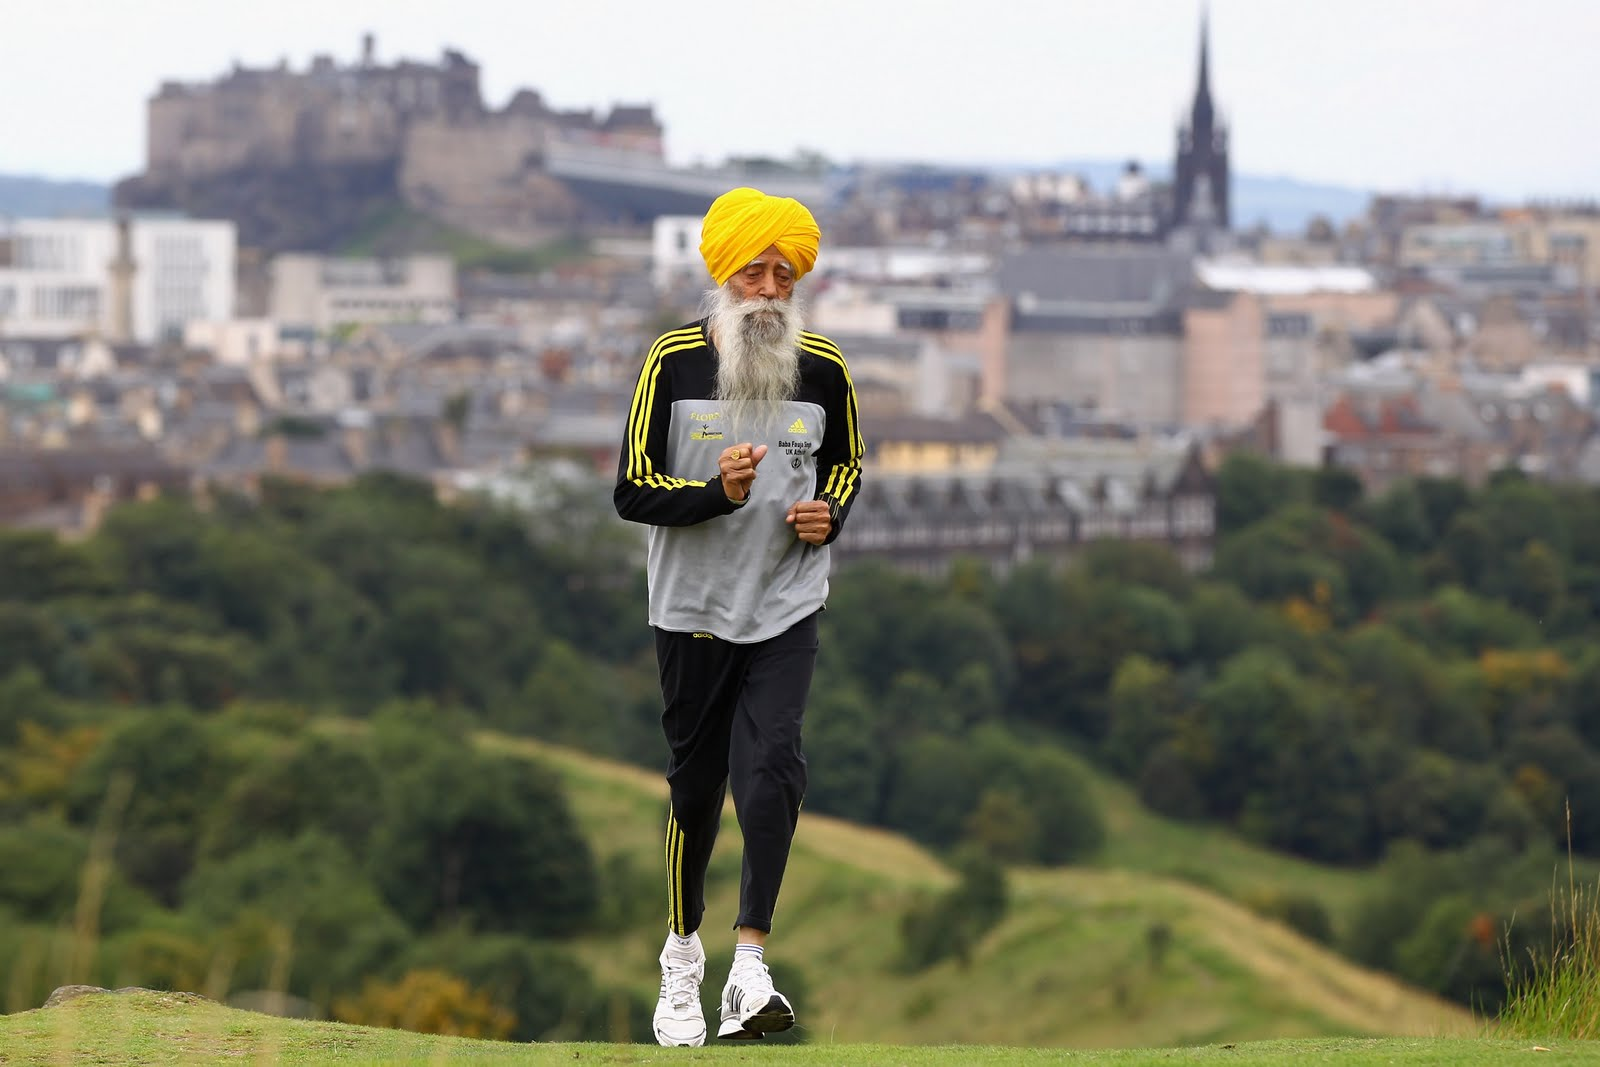 Being active is like a medication. Who says? 102-year-old Fauja Singh